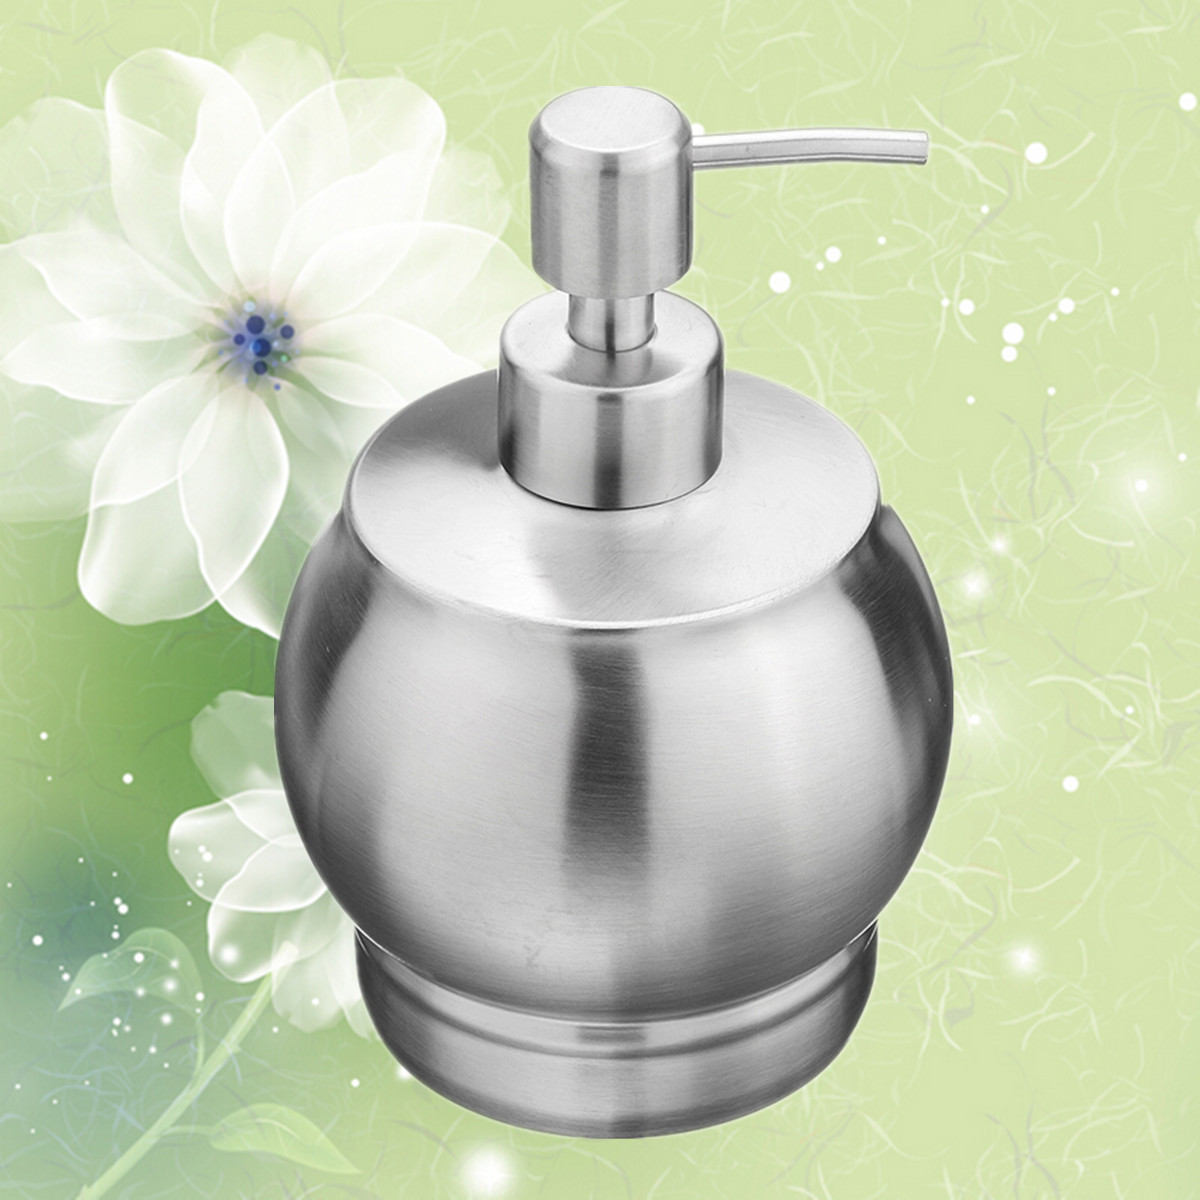 Stainless steel Color Sanding Liquid Soap Latex Bottle Hand Soap Dispenser